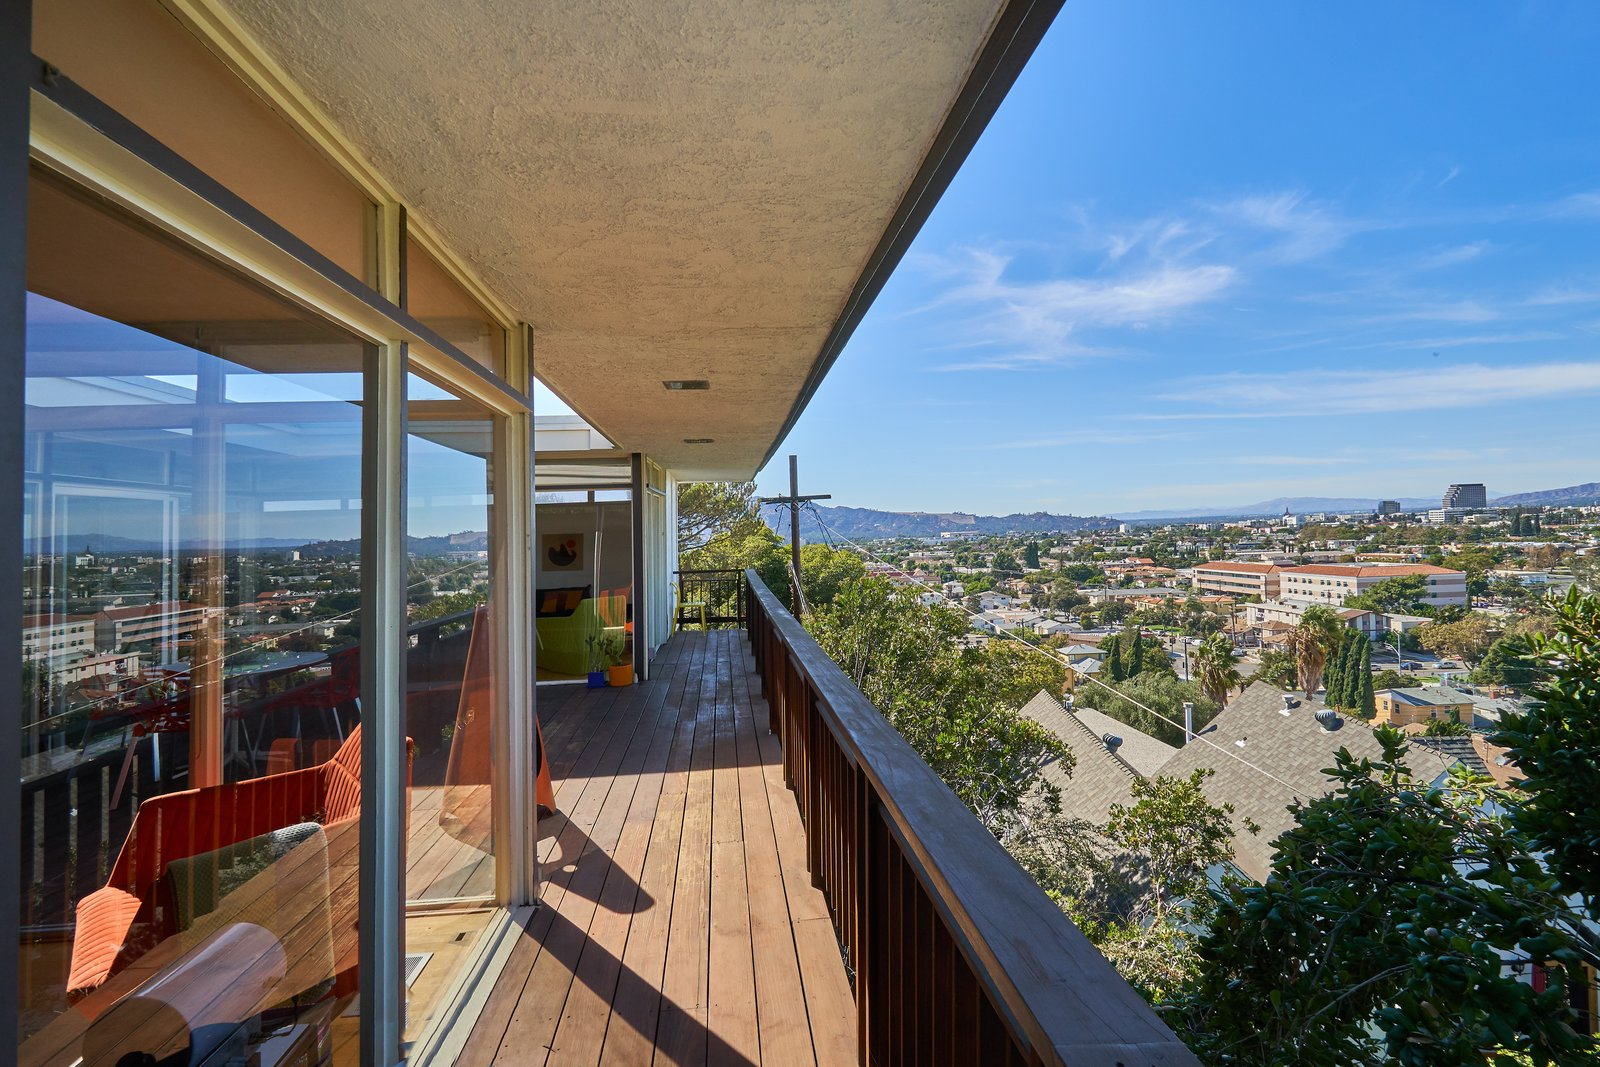 Outdoor and Wood Patio, Porch, Deck The rear of the house opens out to the rest of the city, while the facade facing the street is more closed off.  Photo 11 of 14 in A Midcentury-Modern Home in L.A. Designed by Richard Banta Is For Sale For $899K